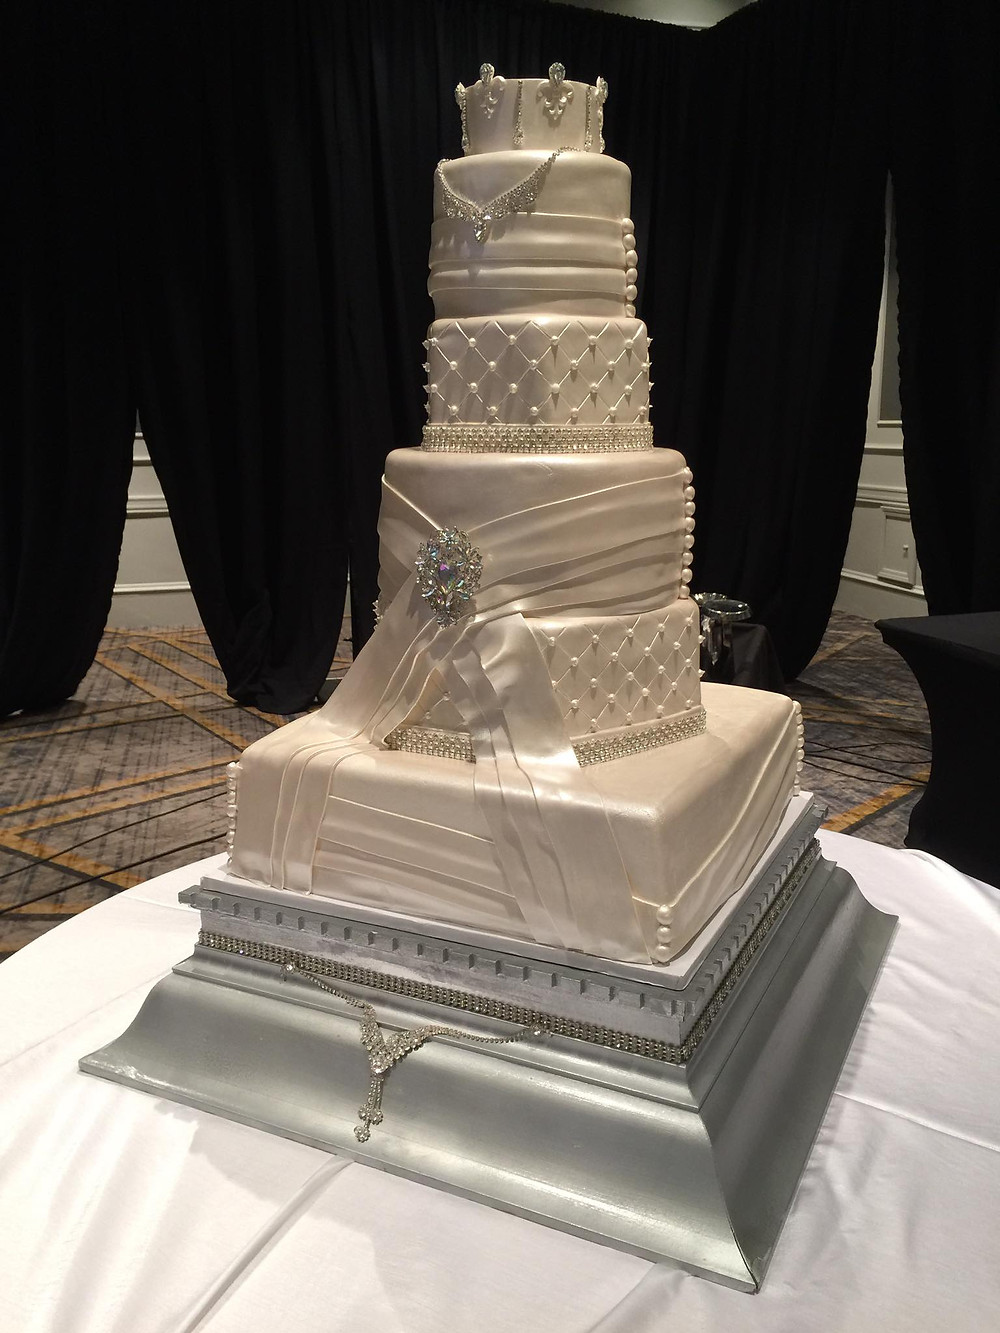 Signature Cakes by Vicki - Weddings & Events by Raina